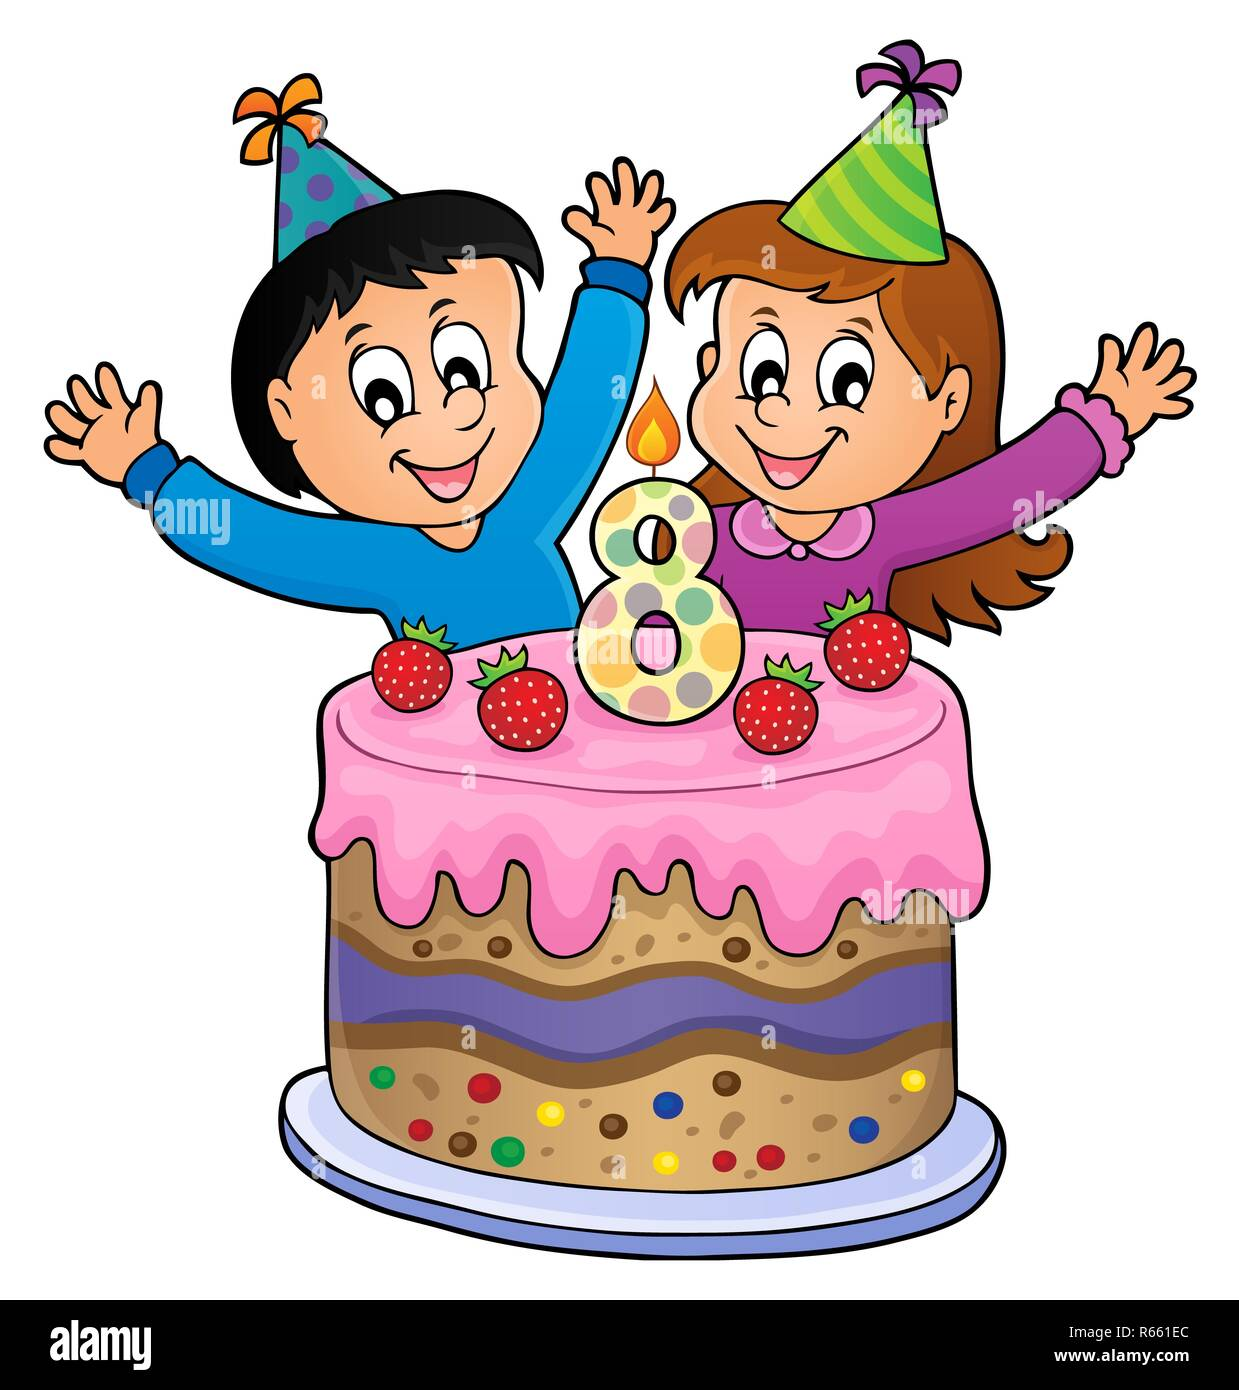 Wondrous Eight Year Old Birthday Cake Cut Out Stock Images Pictures Alamy Funny Birthday Cards Online Chimdamsfinfo